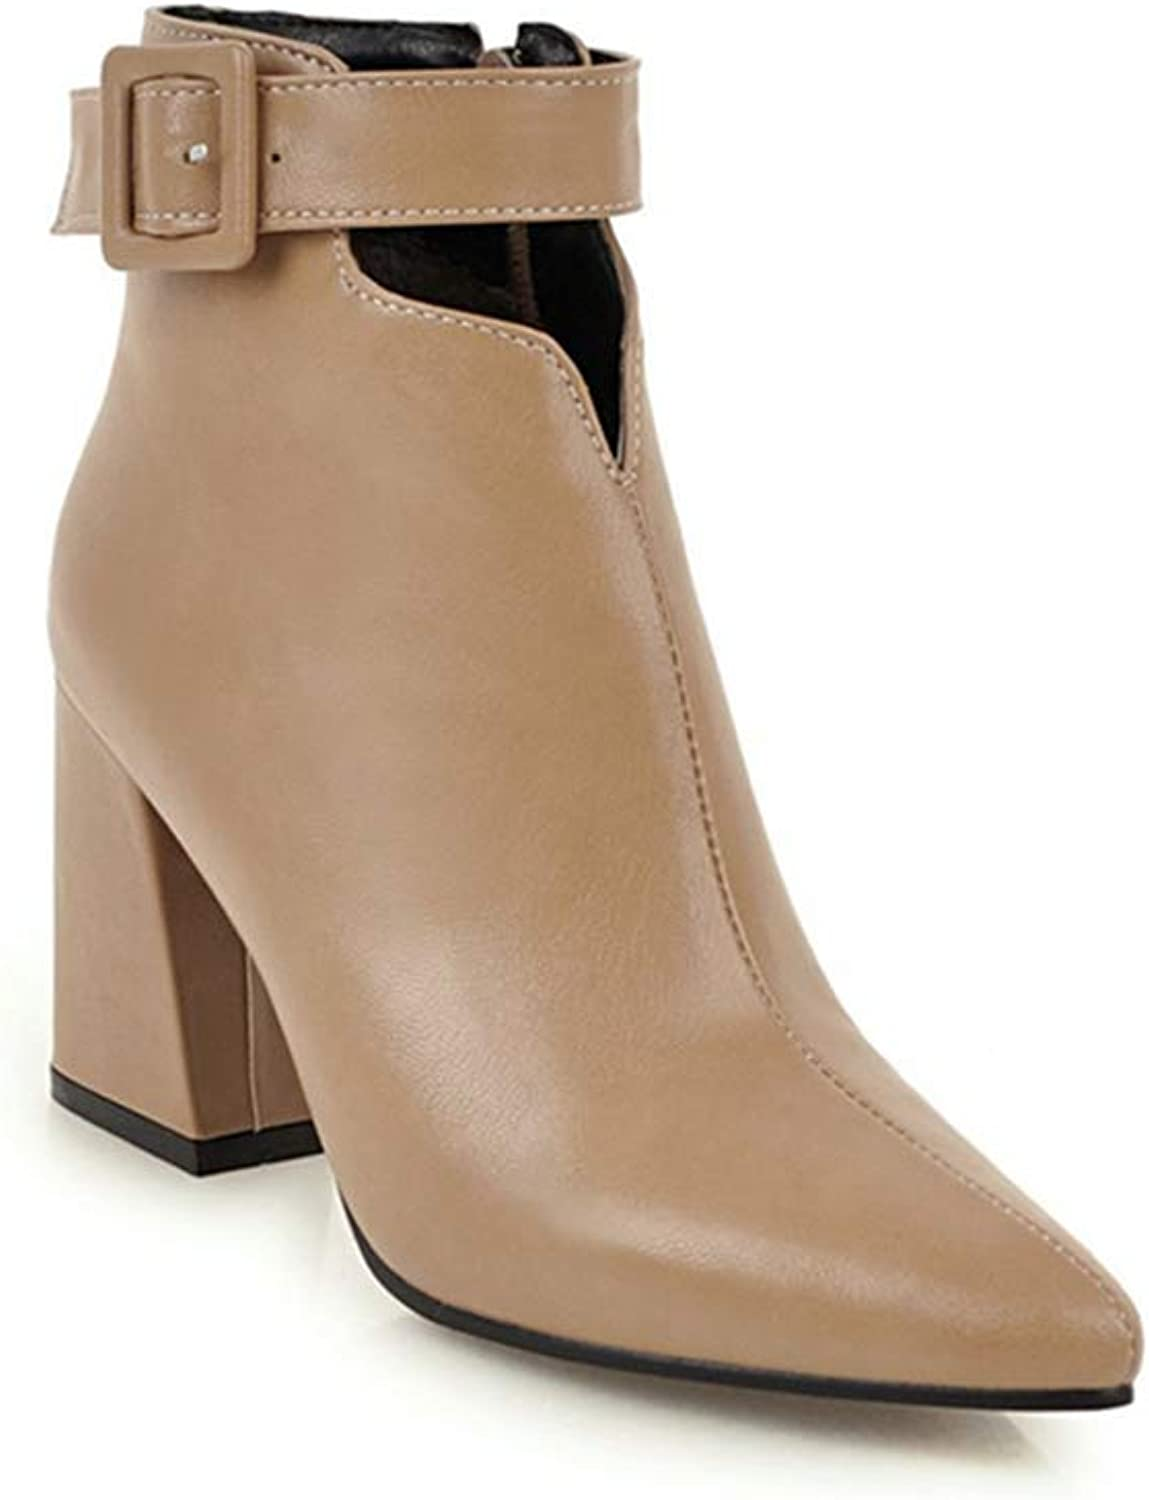 GIY Women's Fashion Pointed Toe Dressy Western Ankle Boots Chunky Heel Zipper Chelsea Booties Short Boots